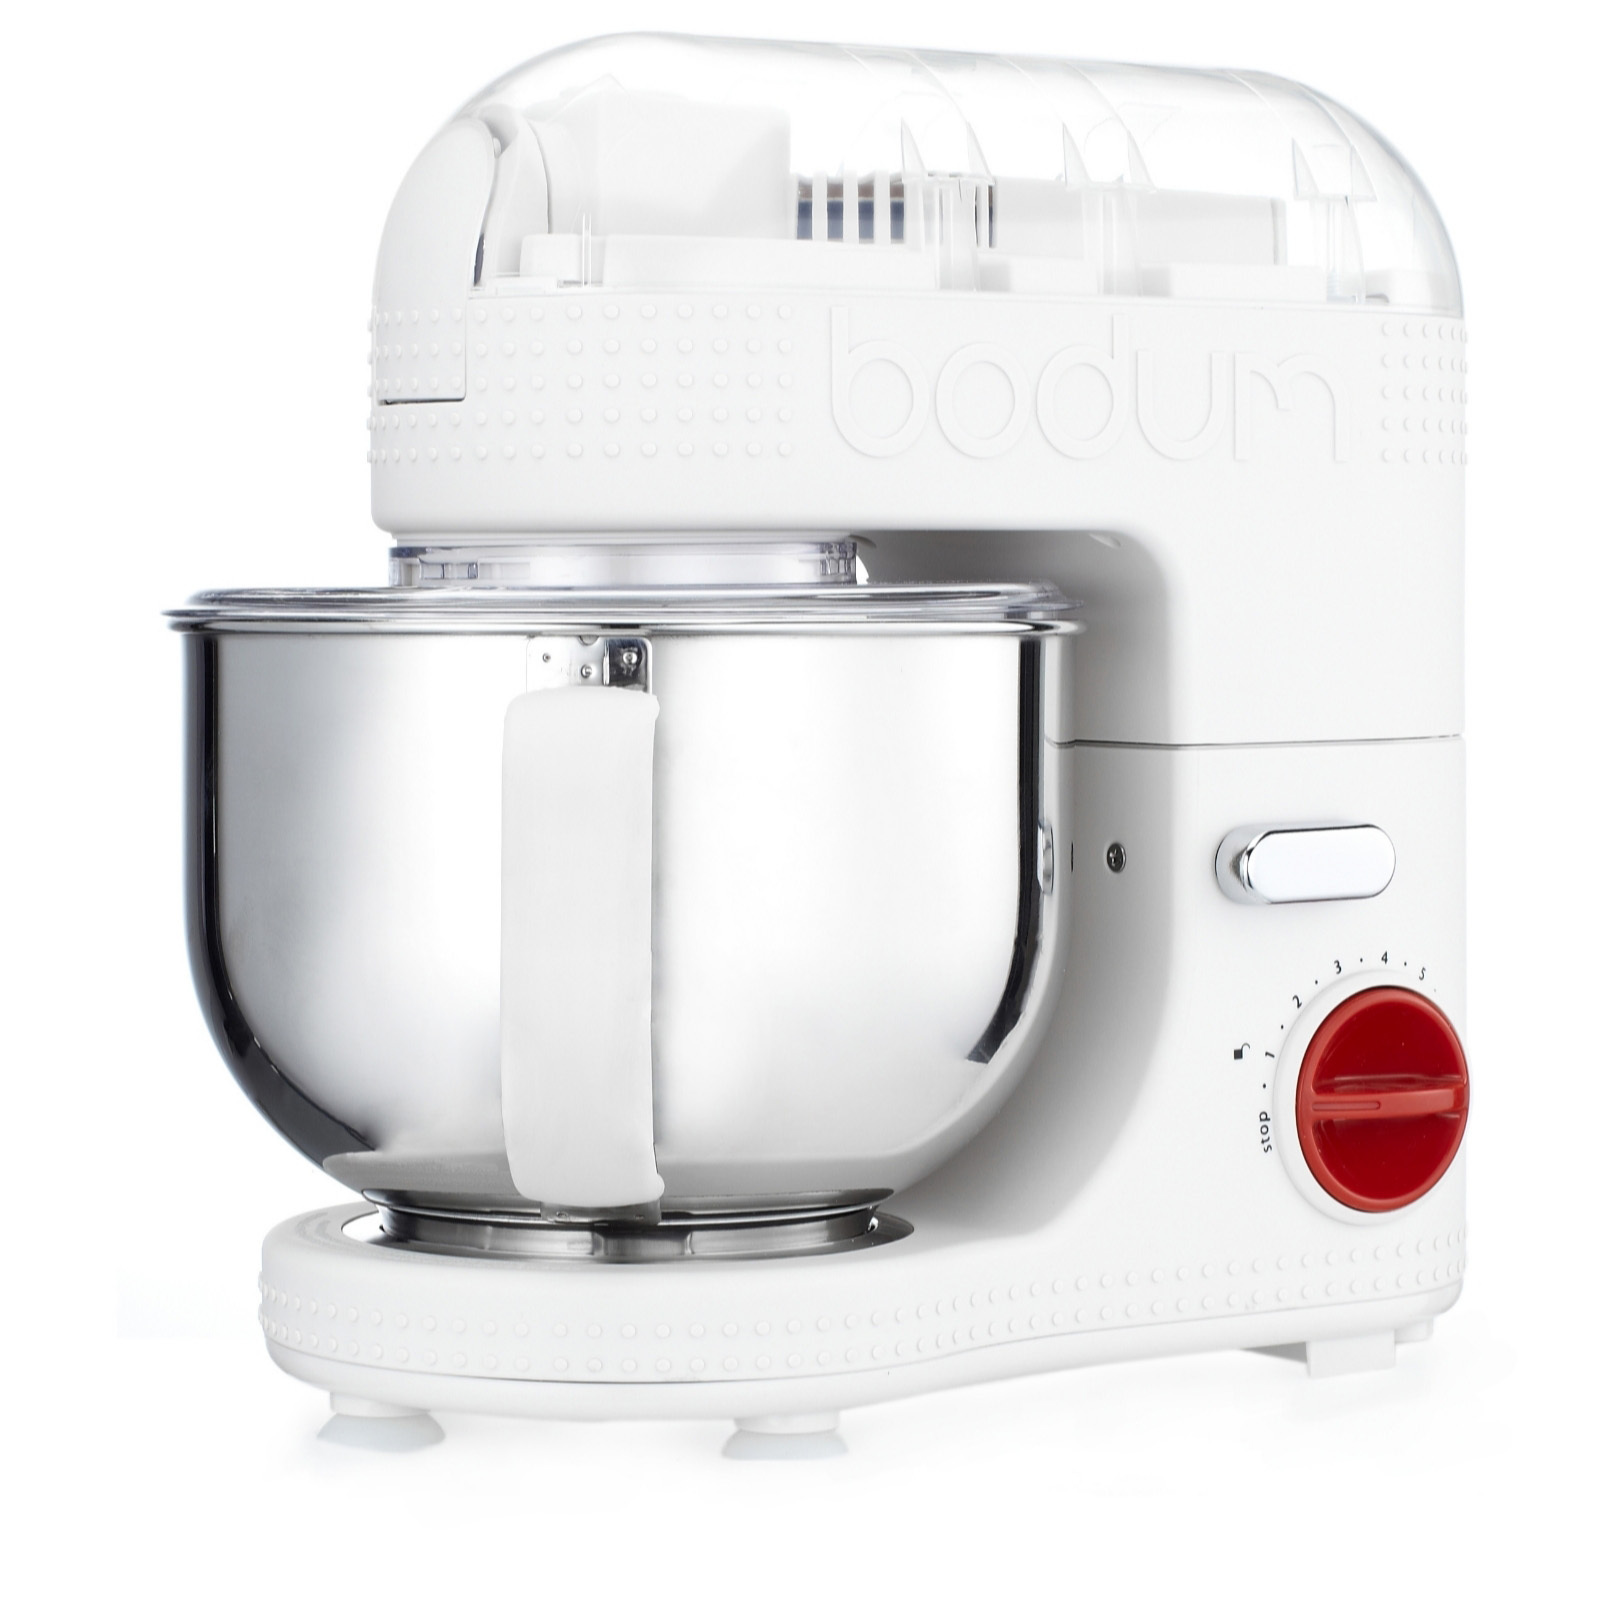 Six of the best gadgets for: better baking